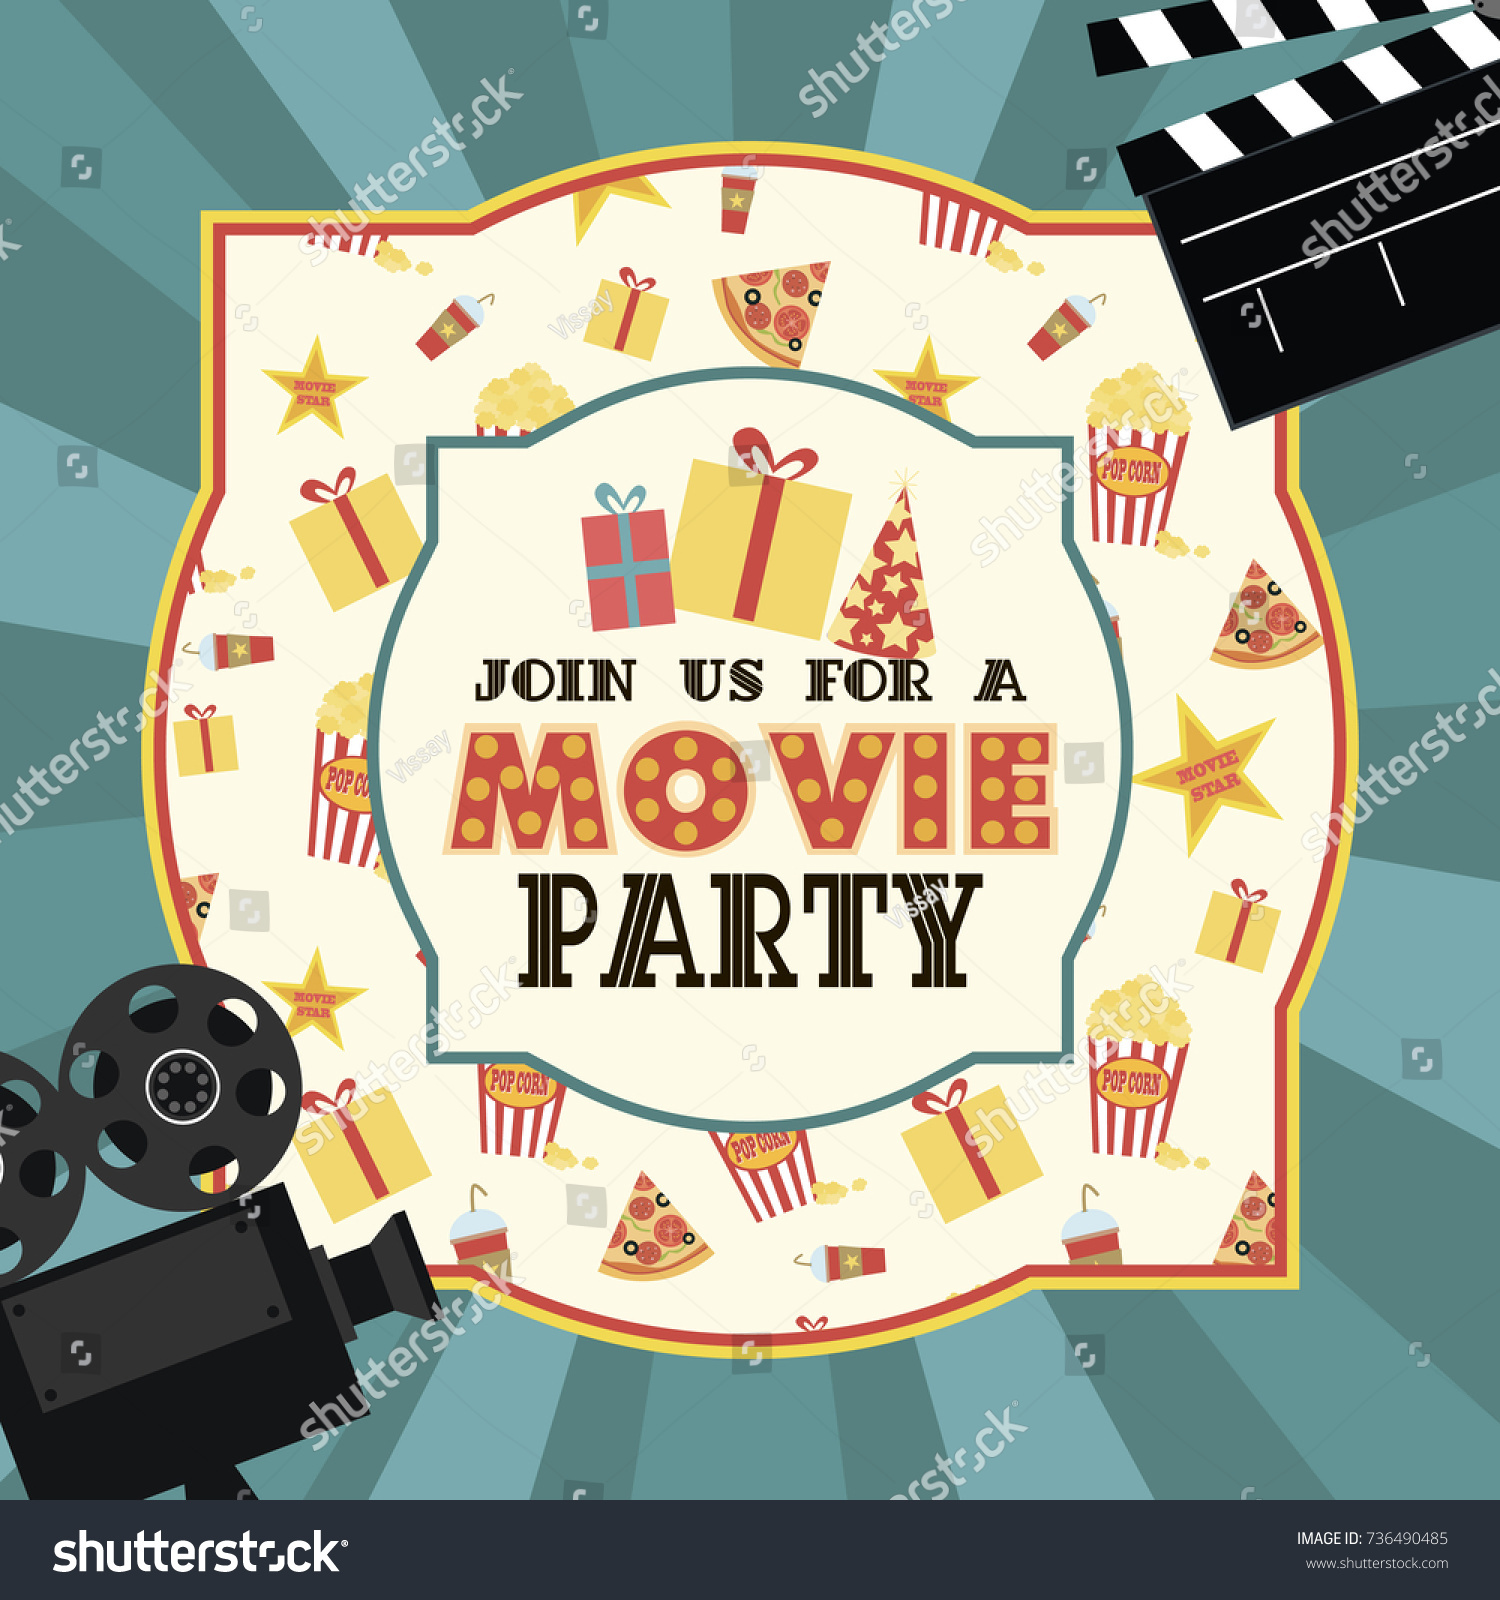 Birthday Party Invitation Movie Party Hollywood Stock Vector HD ...